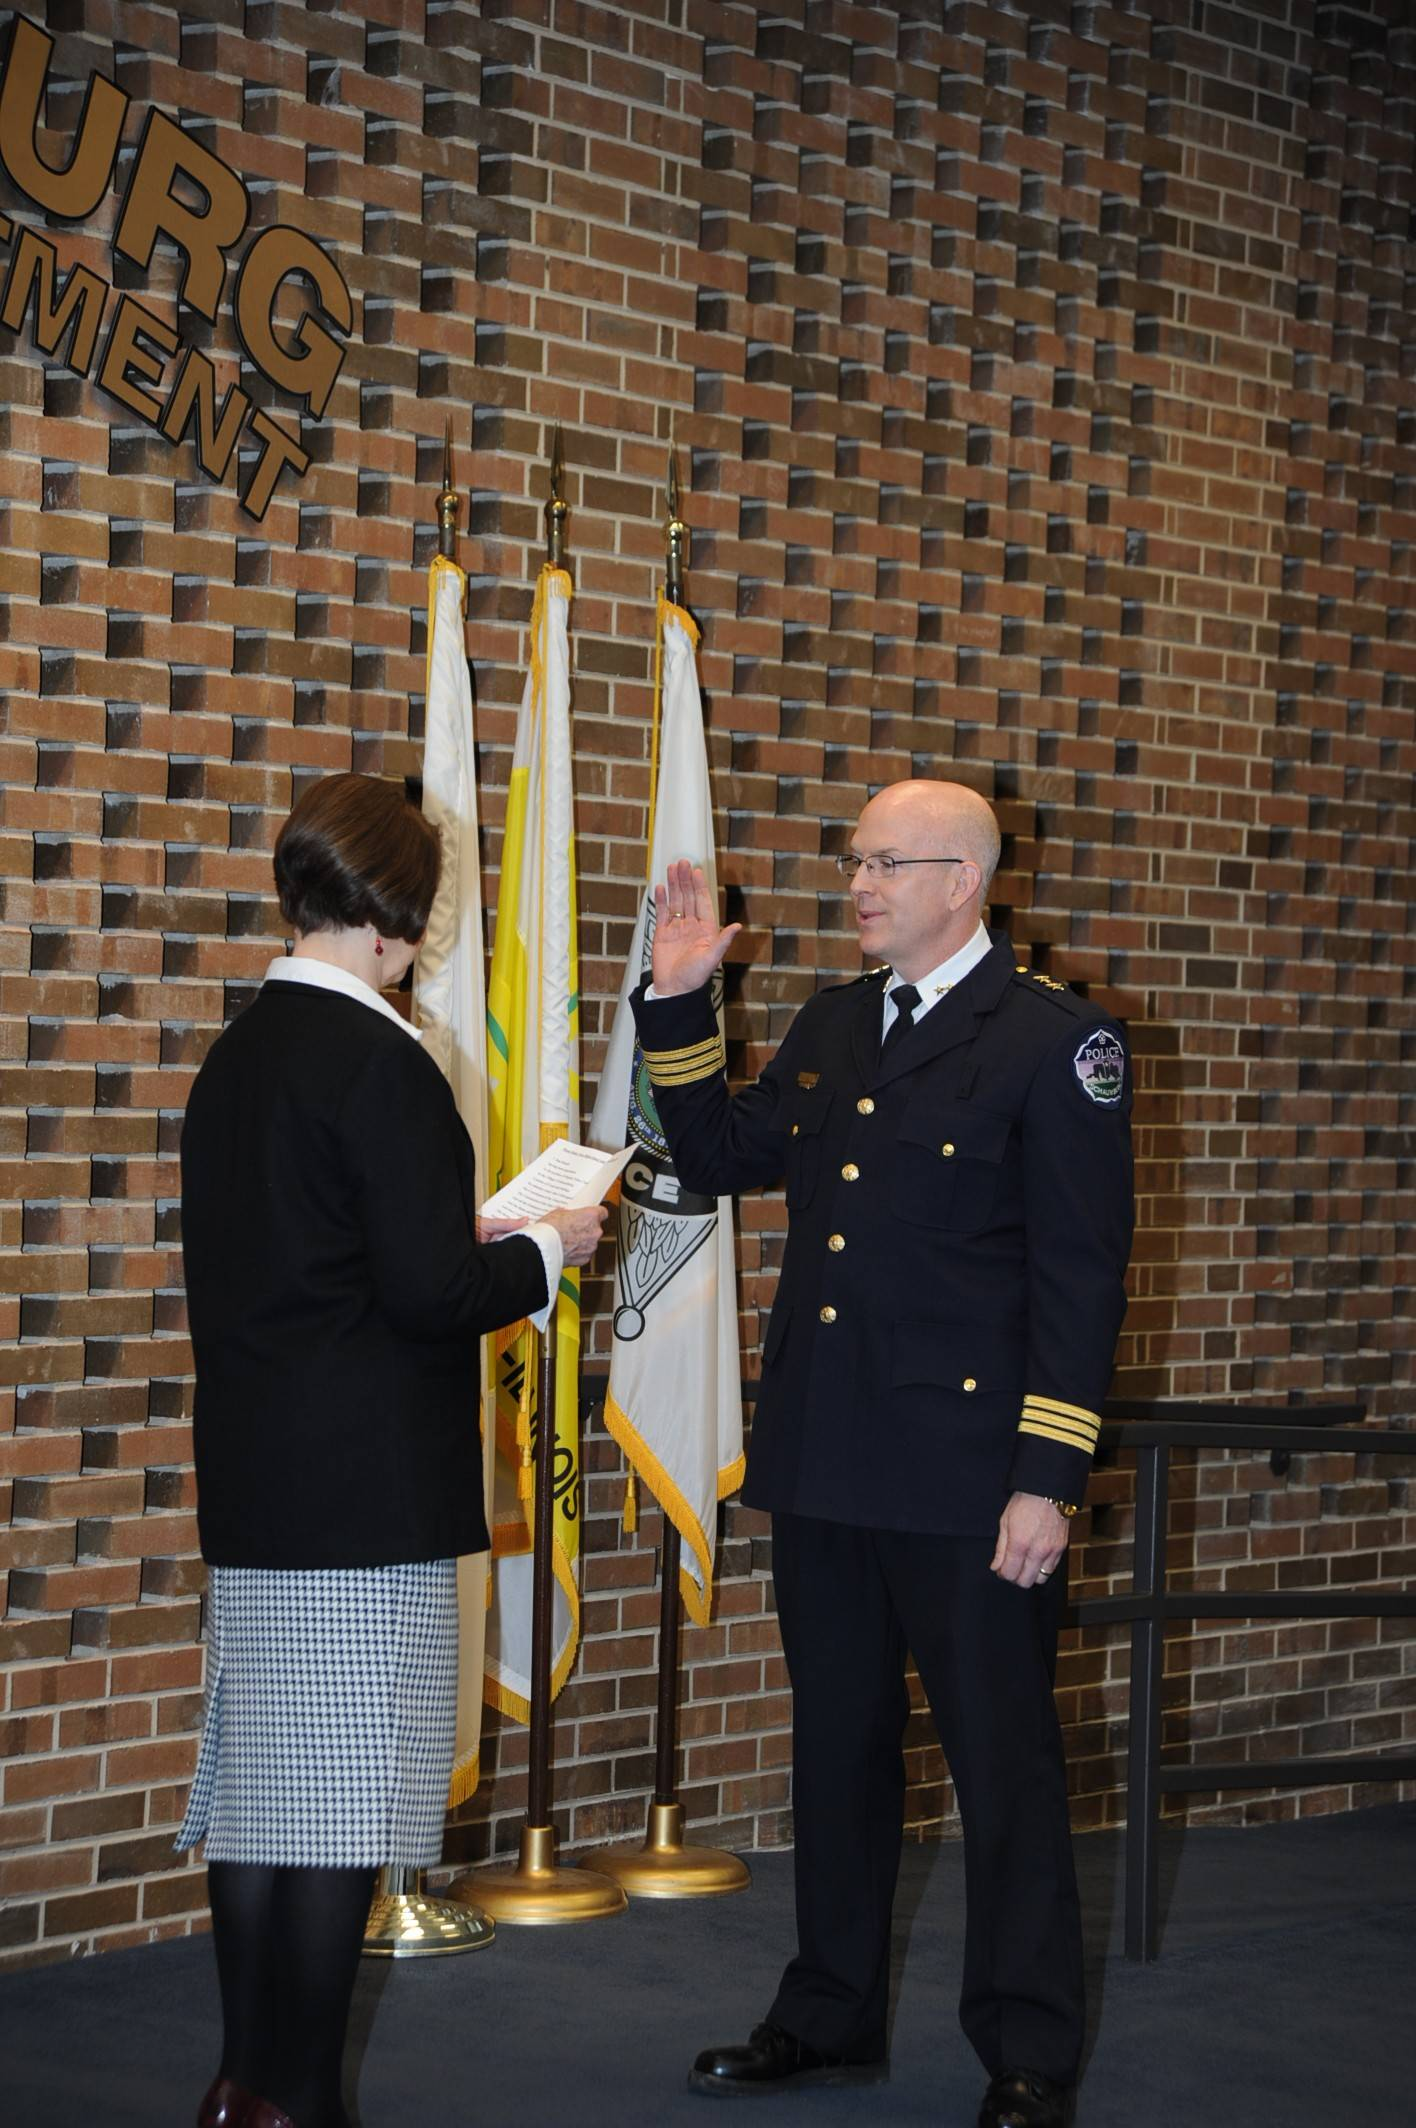 Schaumburg Village Clerk Marilyn Karr, left, swears in new Deputy Police Chief Dan Roach on Thursday. Roach's promotion from commander of investigations to deputy chief completes the restructuring of the department's command structure, which began after three undercover officers' arrests last year.